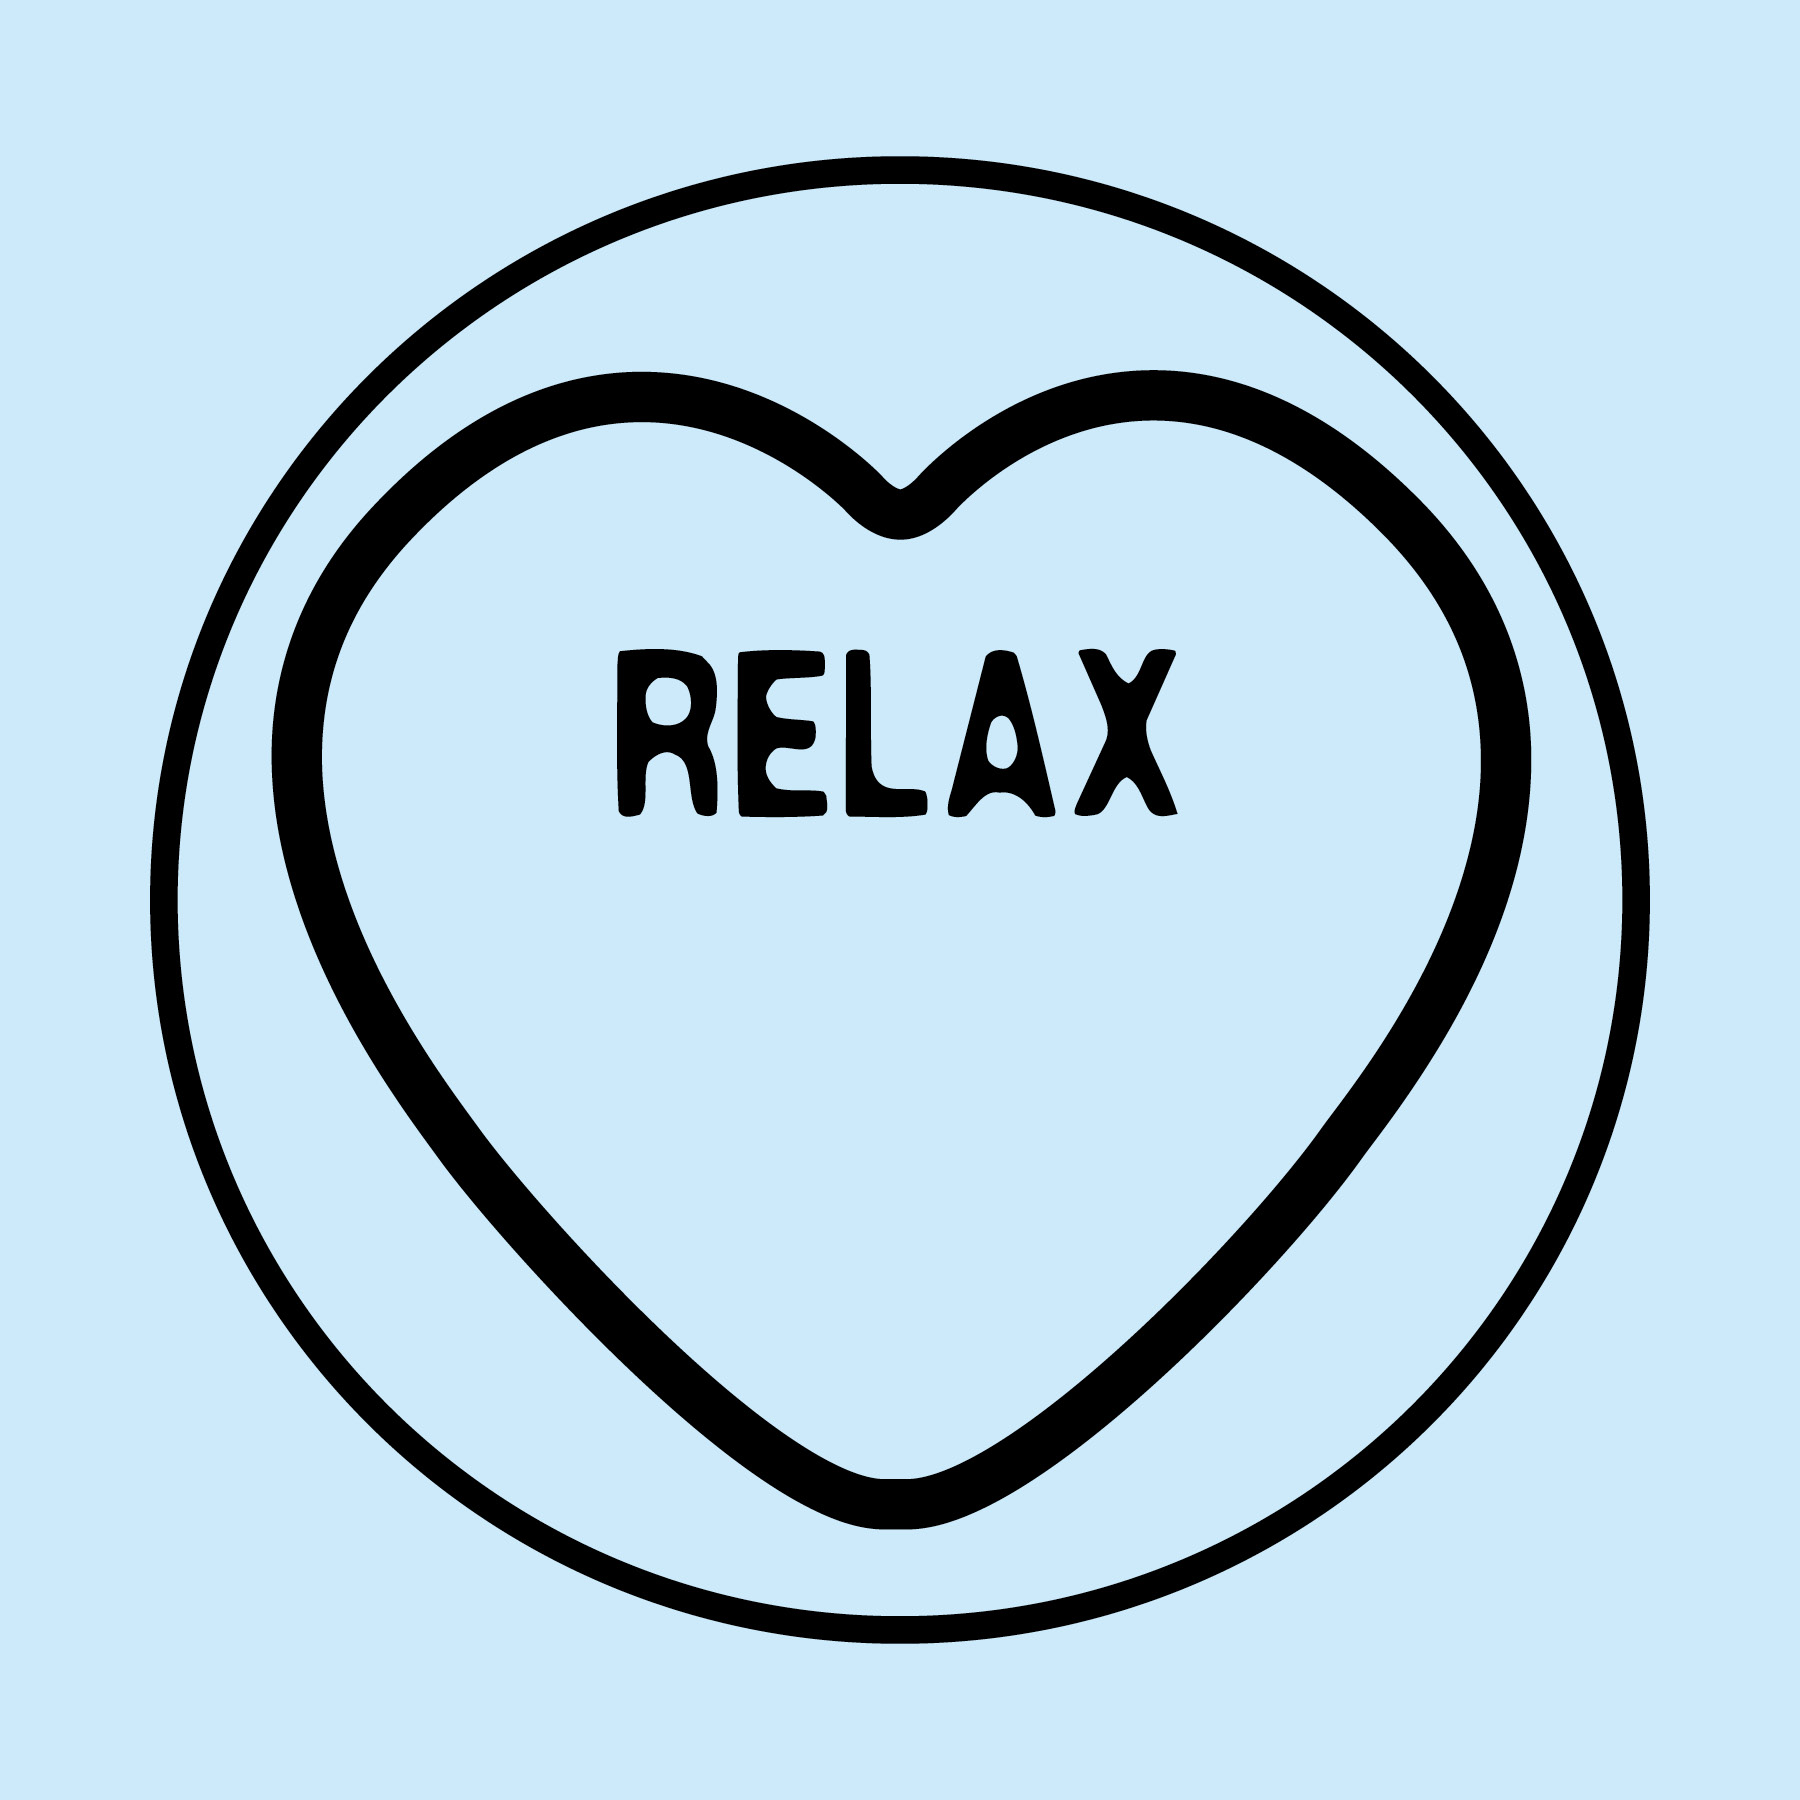 Blue Love Heart with Relax expression